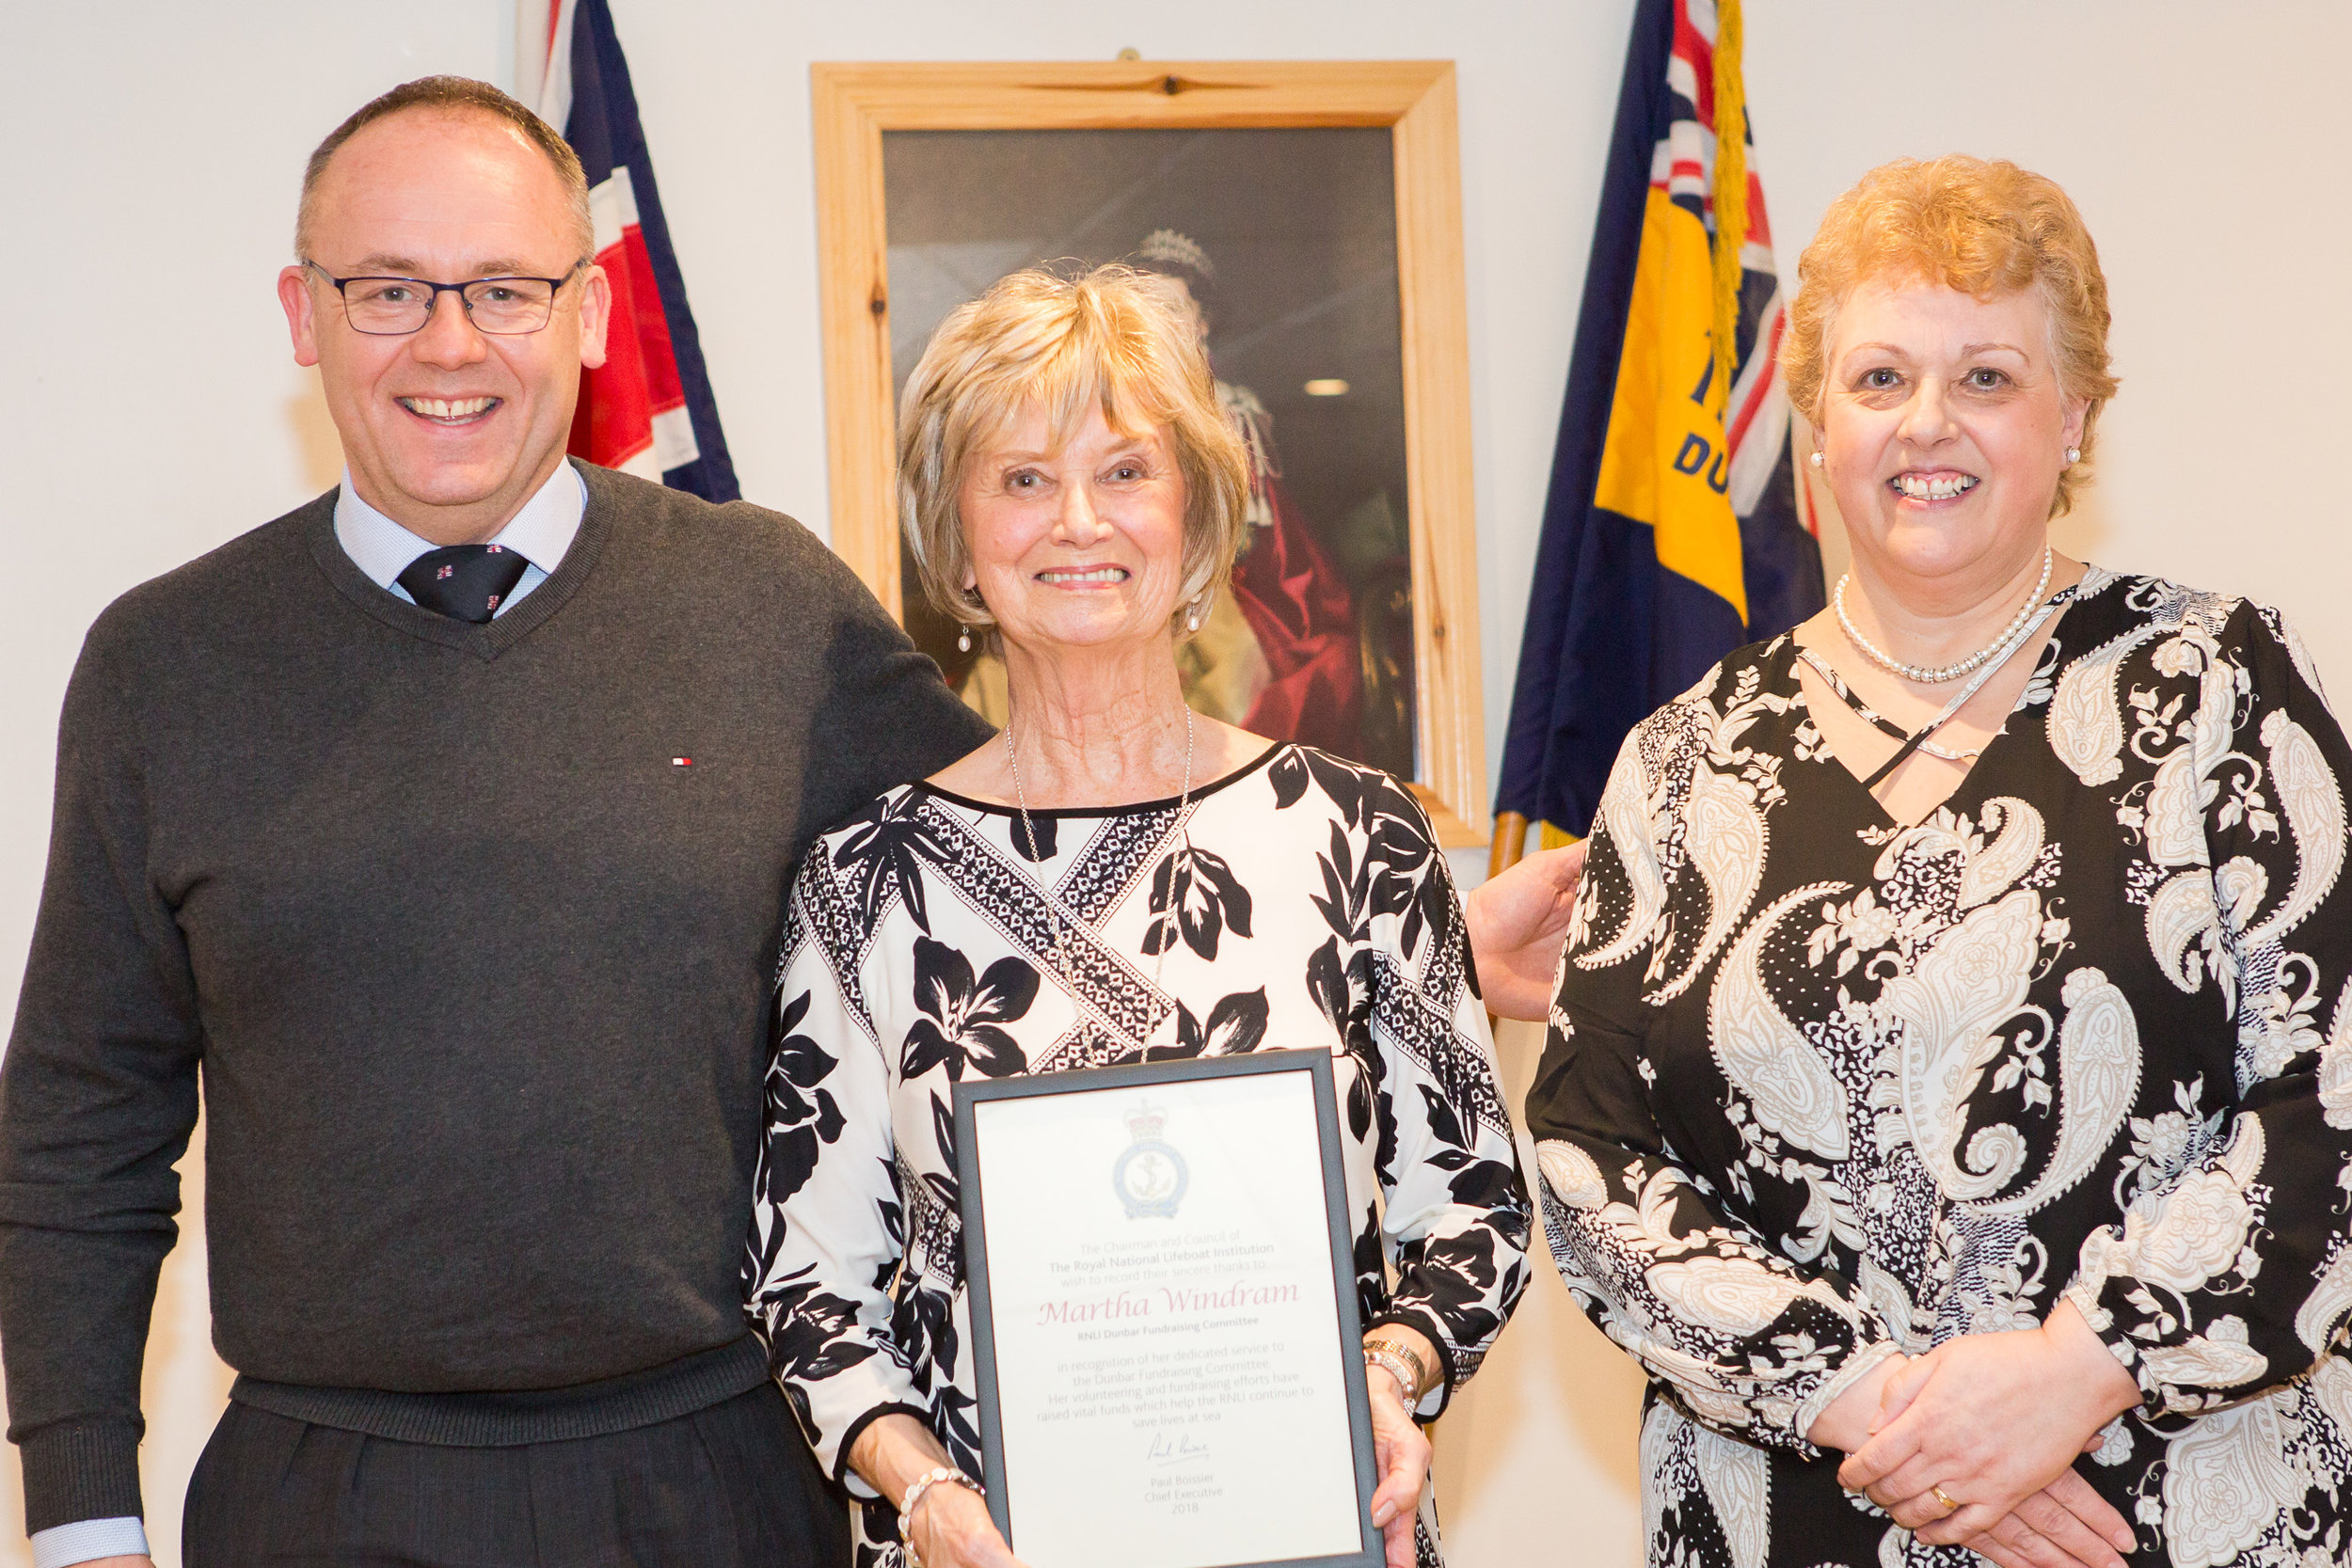 Martha Windram (RNLI award for outstanding service to the Fundraising Committee)